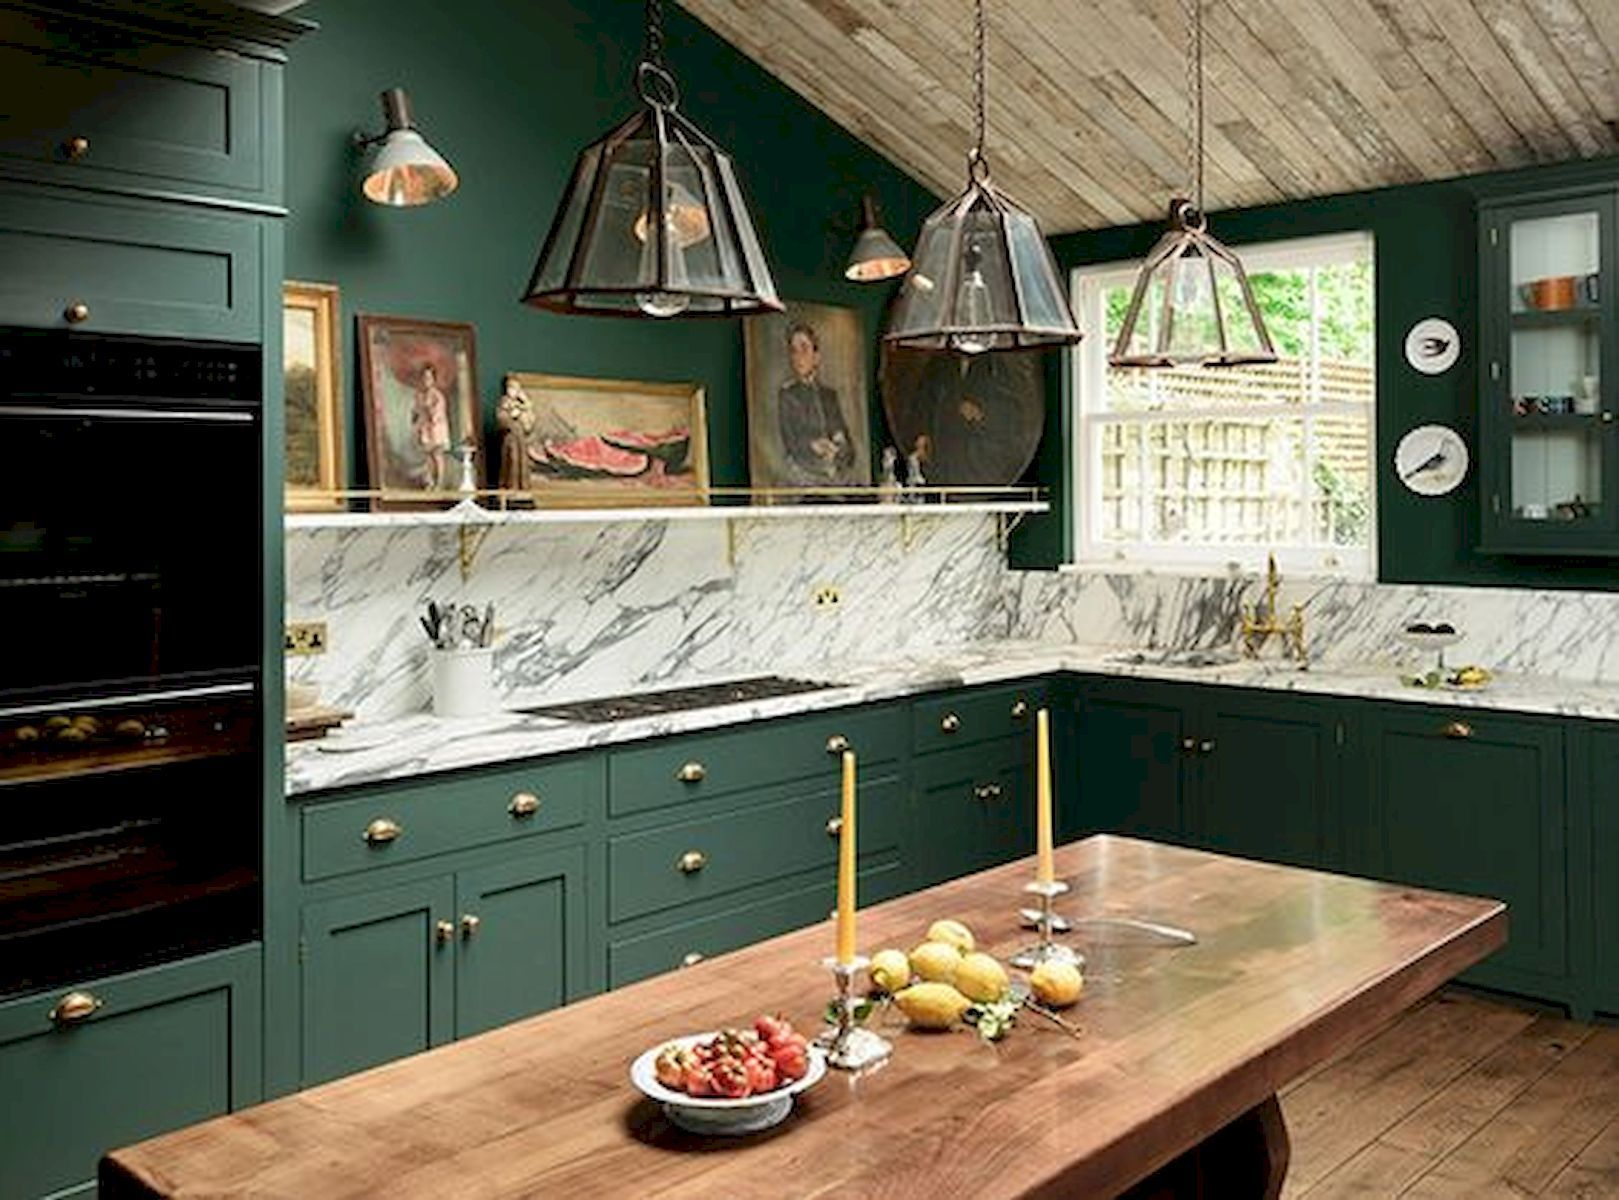 17 Best Green Kitchen Cabinets Design Ideas - CoachDecor.com #darkgreenkitchen